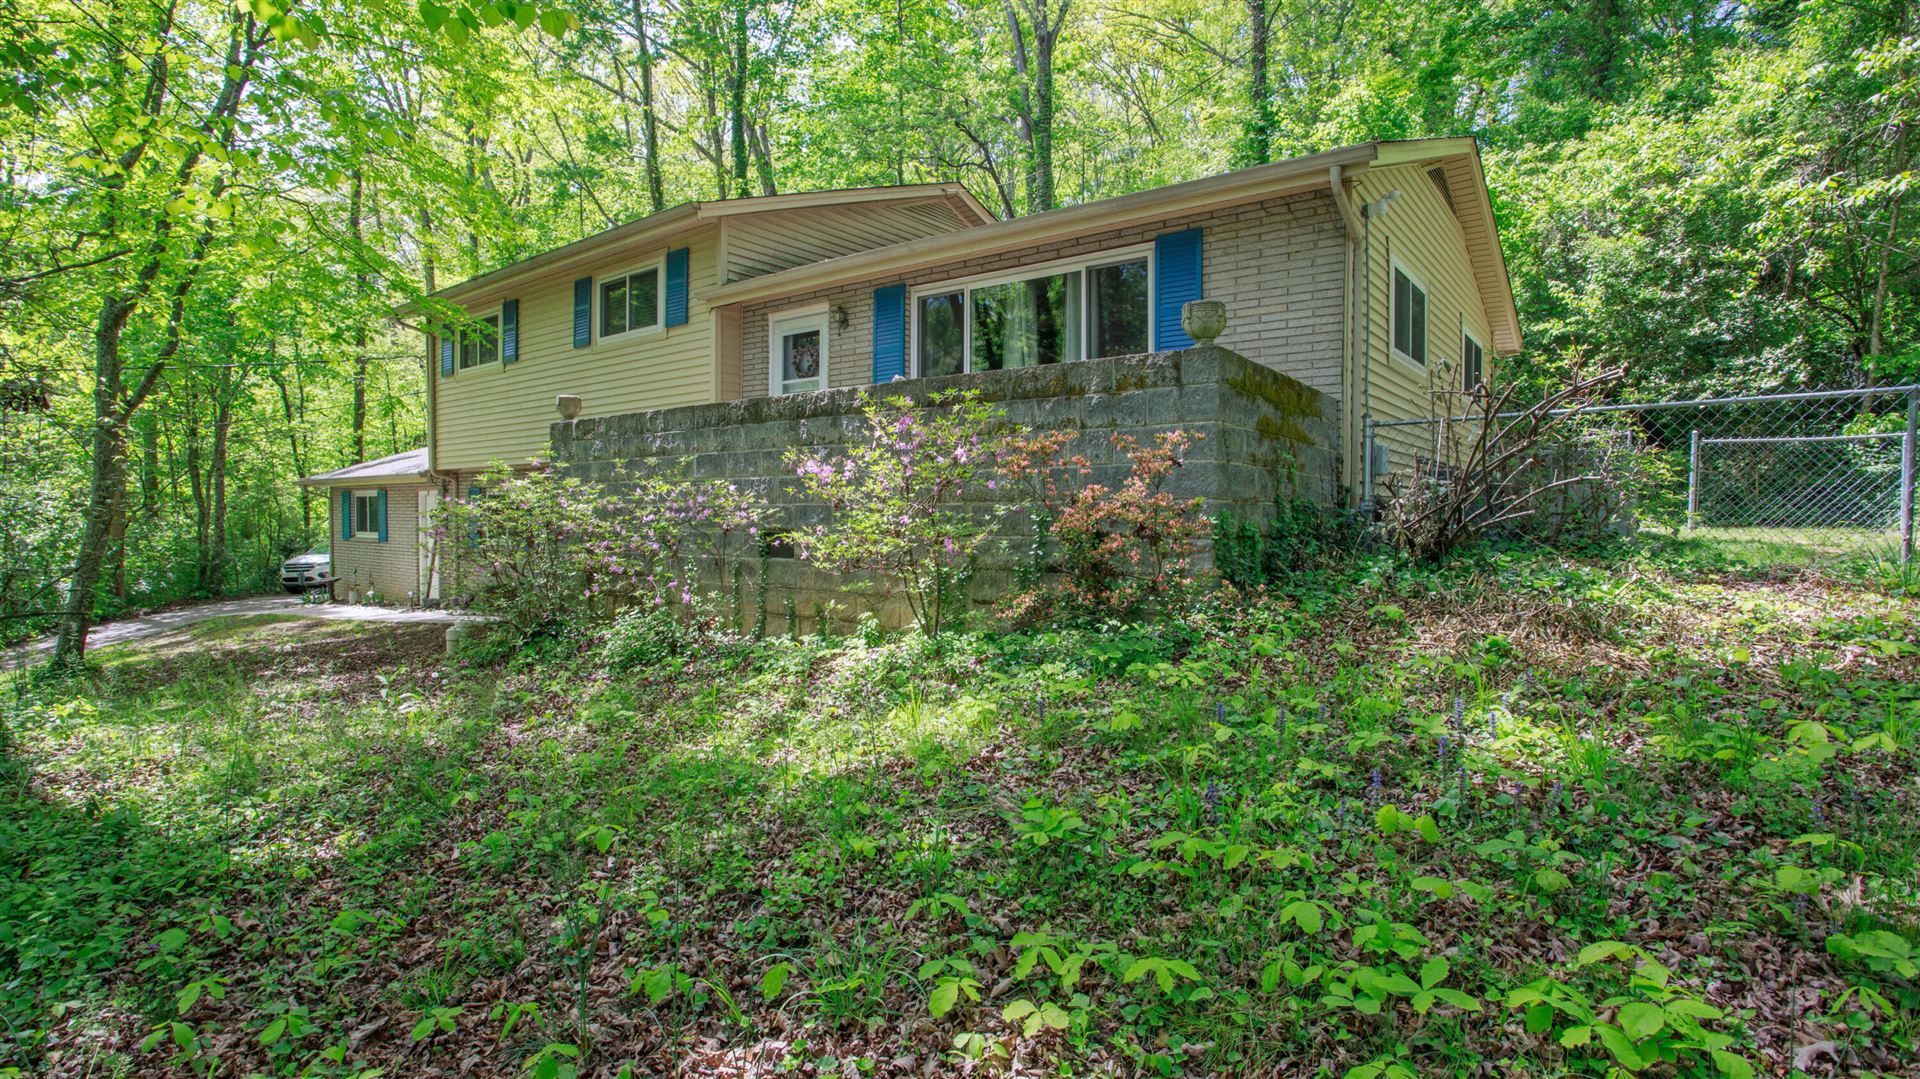 Photo of 149 California Ave, Oak Ridge, TN 37830 (MLS # 1151751)